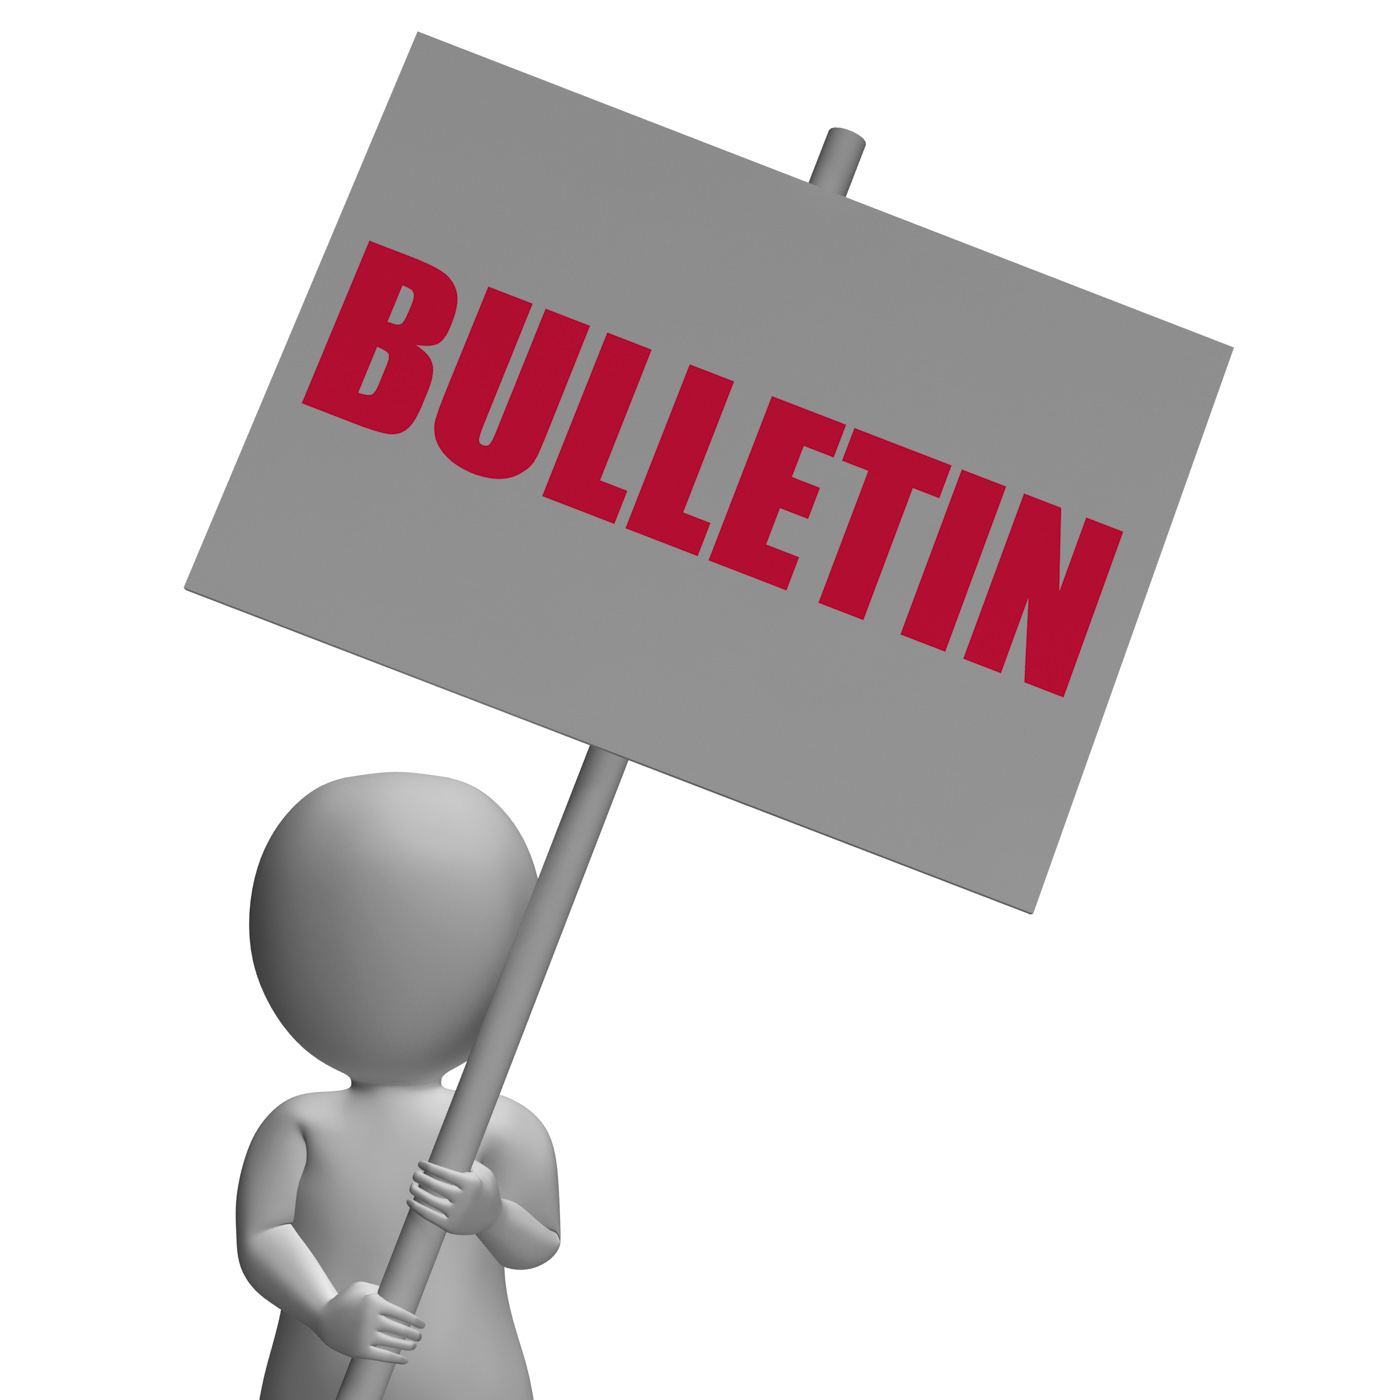 Bulletin Protest Banner Shows Official Notification Or Notice board, Announce, Announcement, Banner, Board, HQ Photo